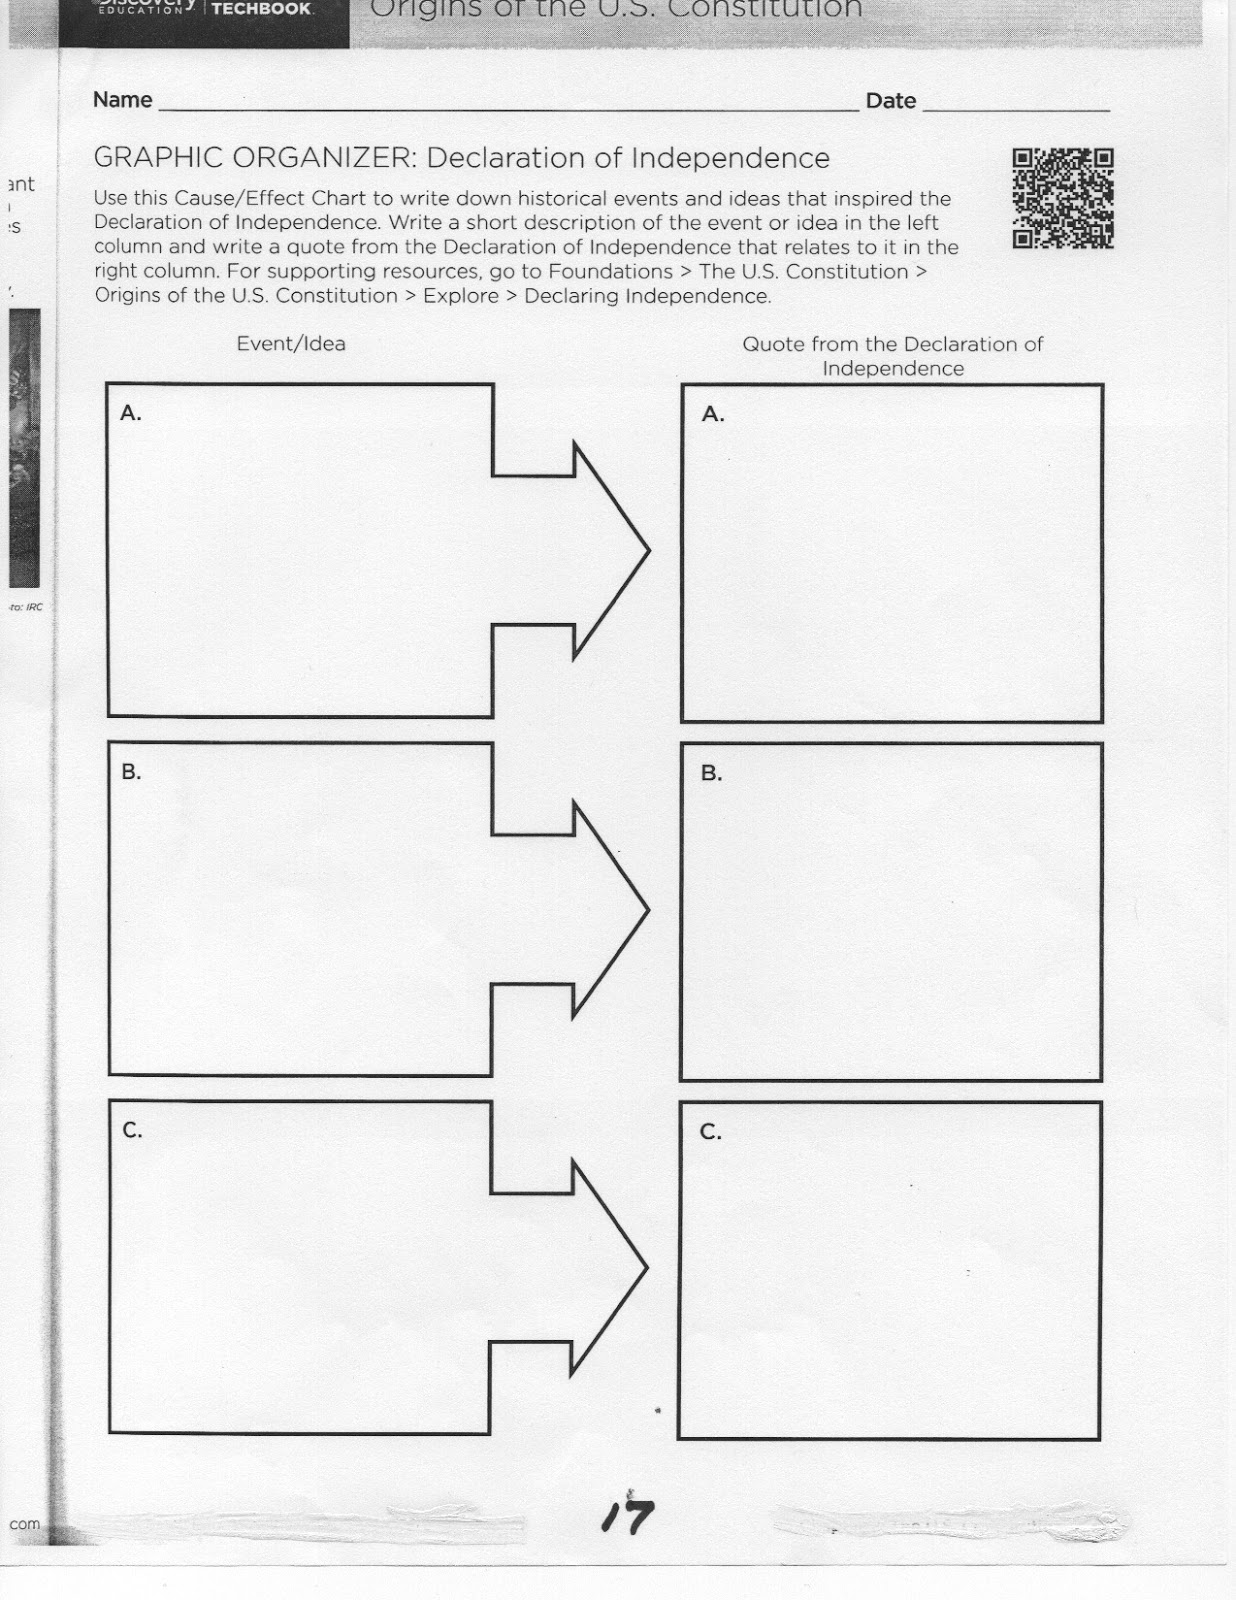 Coach Green S Class U3 Worksheets Origins Of The